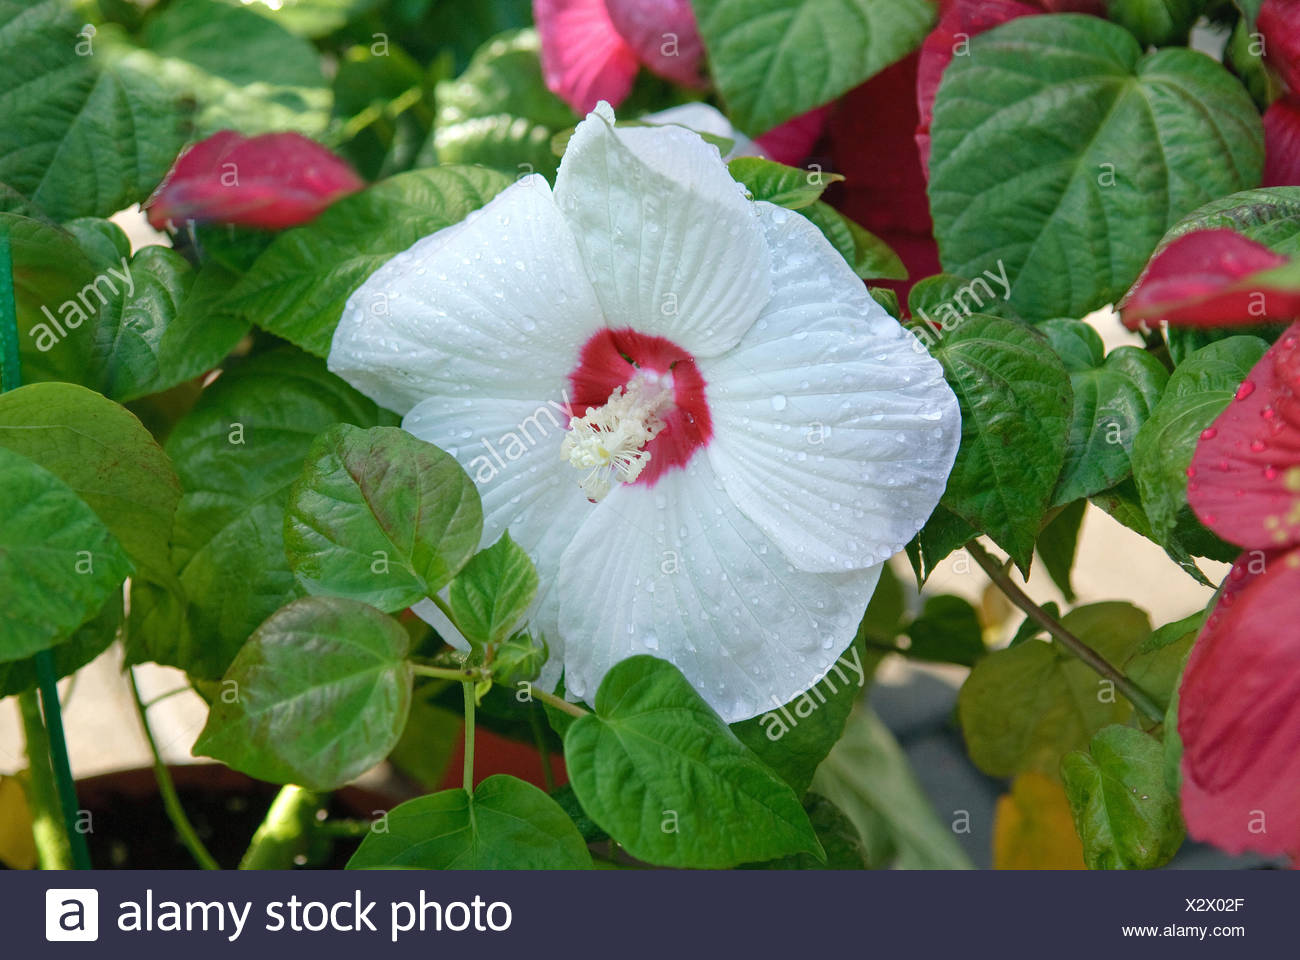 rose mallow hibiscus moscheutos stockfotos rose mallow hibiscus moscheutos bilder alamy. Black Bedroom Furniture Sets. Home Design Ideas